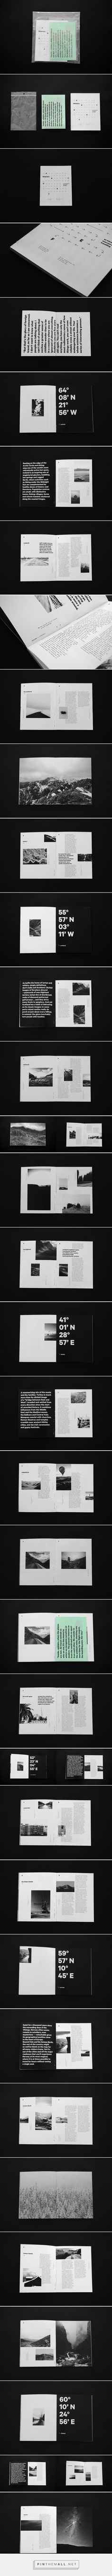 Itinerary on Behance